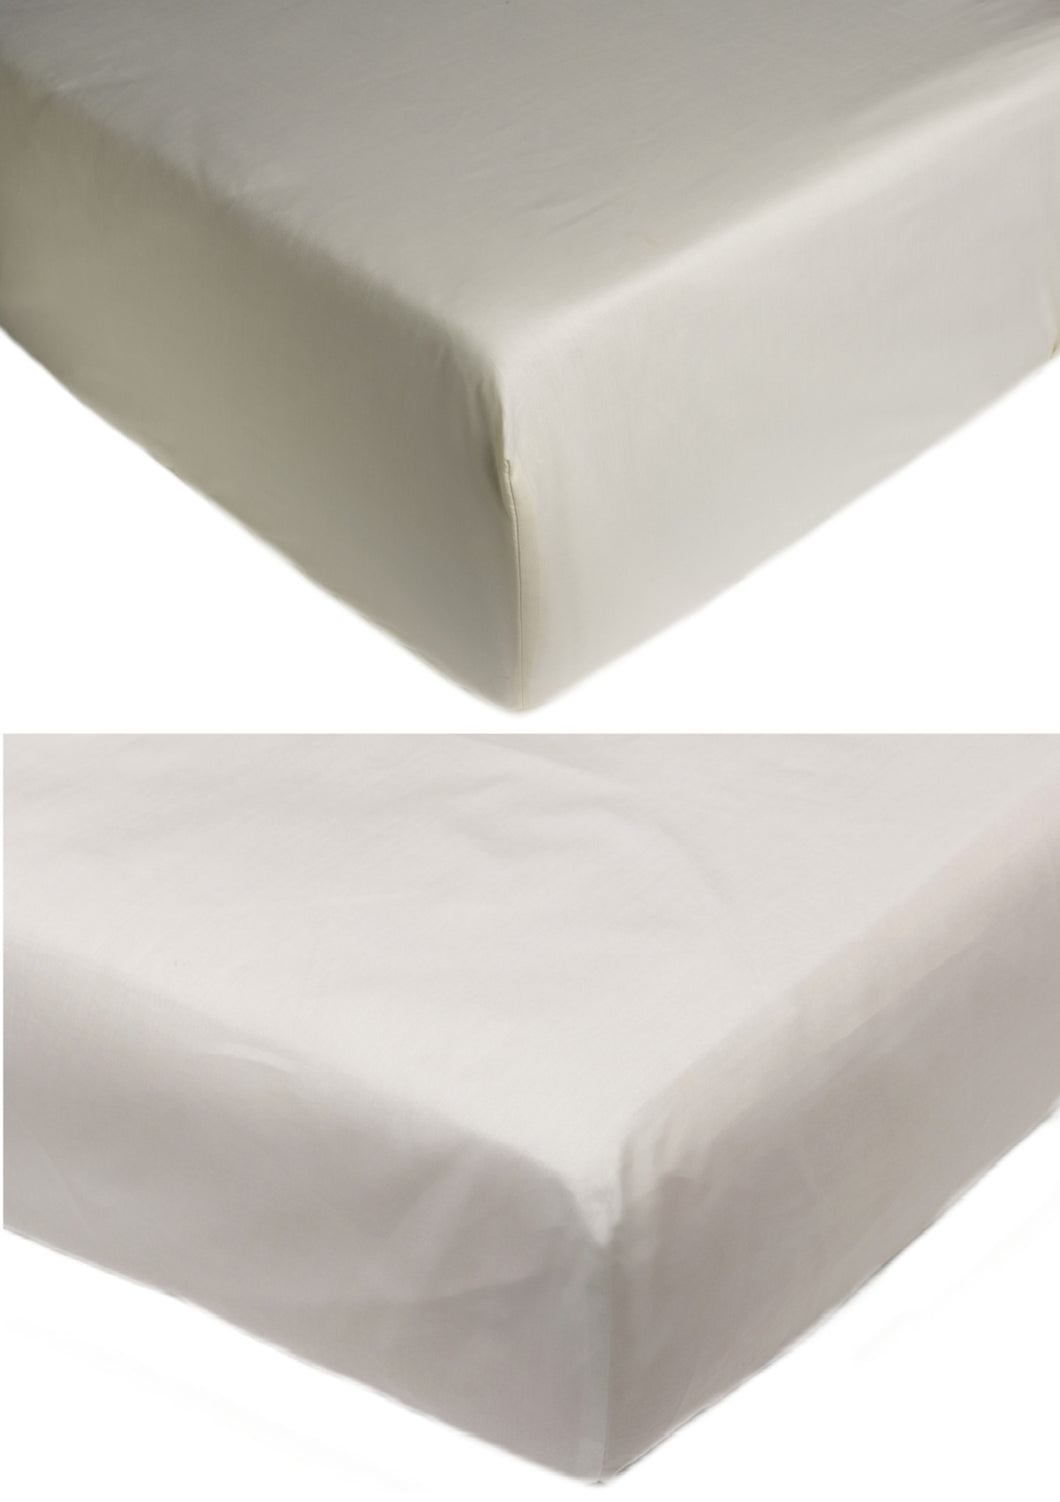 http://images.esellerpro.com/2278/I/129/255/percale-extra-deep-fitted-sheet-bedding-ivory-cream-white-group-image.jpg